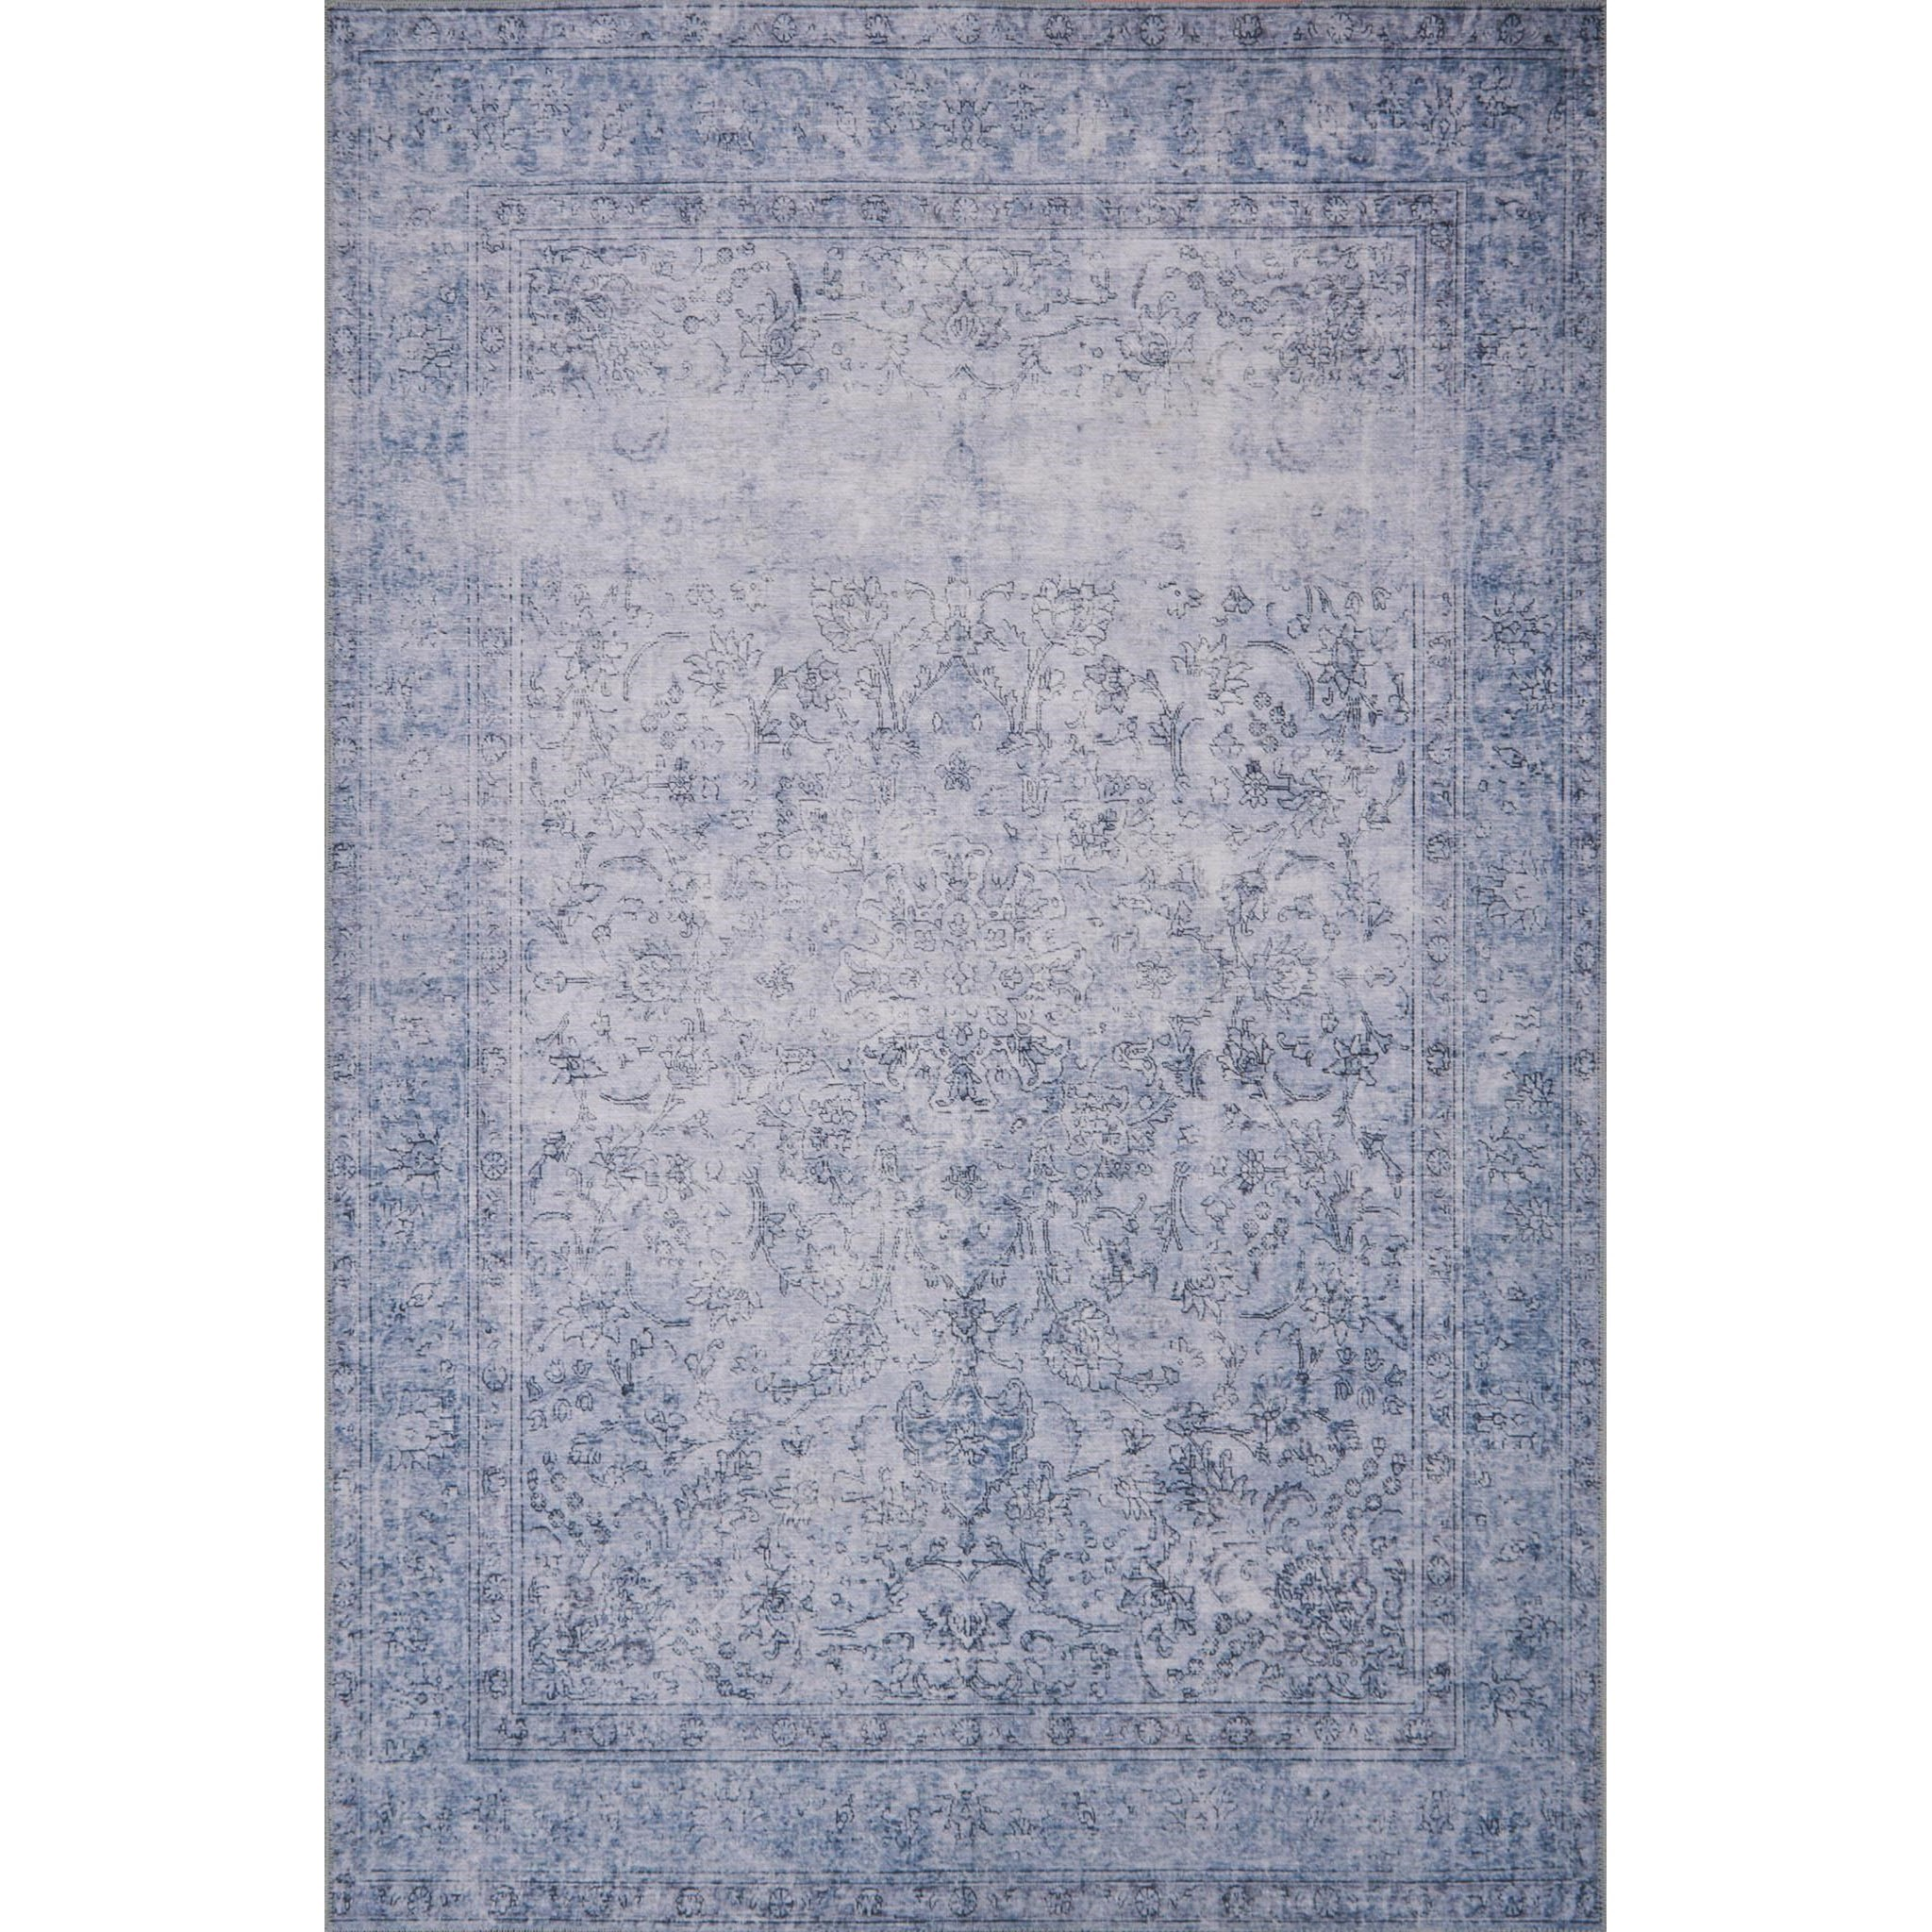 "Loren 7'-6"" x 9'-6"" Area Rug by Loloi Rugs at Sprintz Furniture"